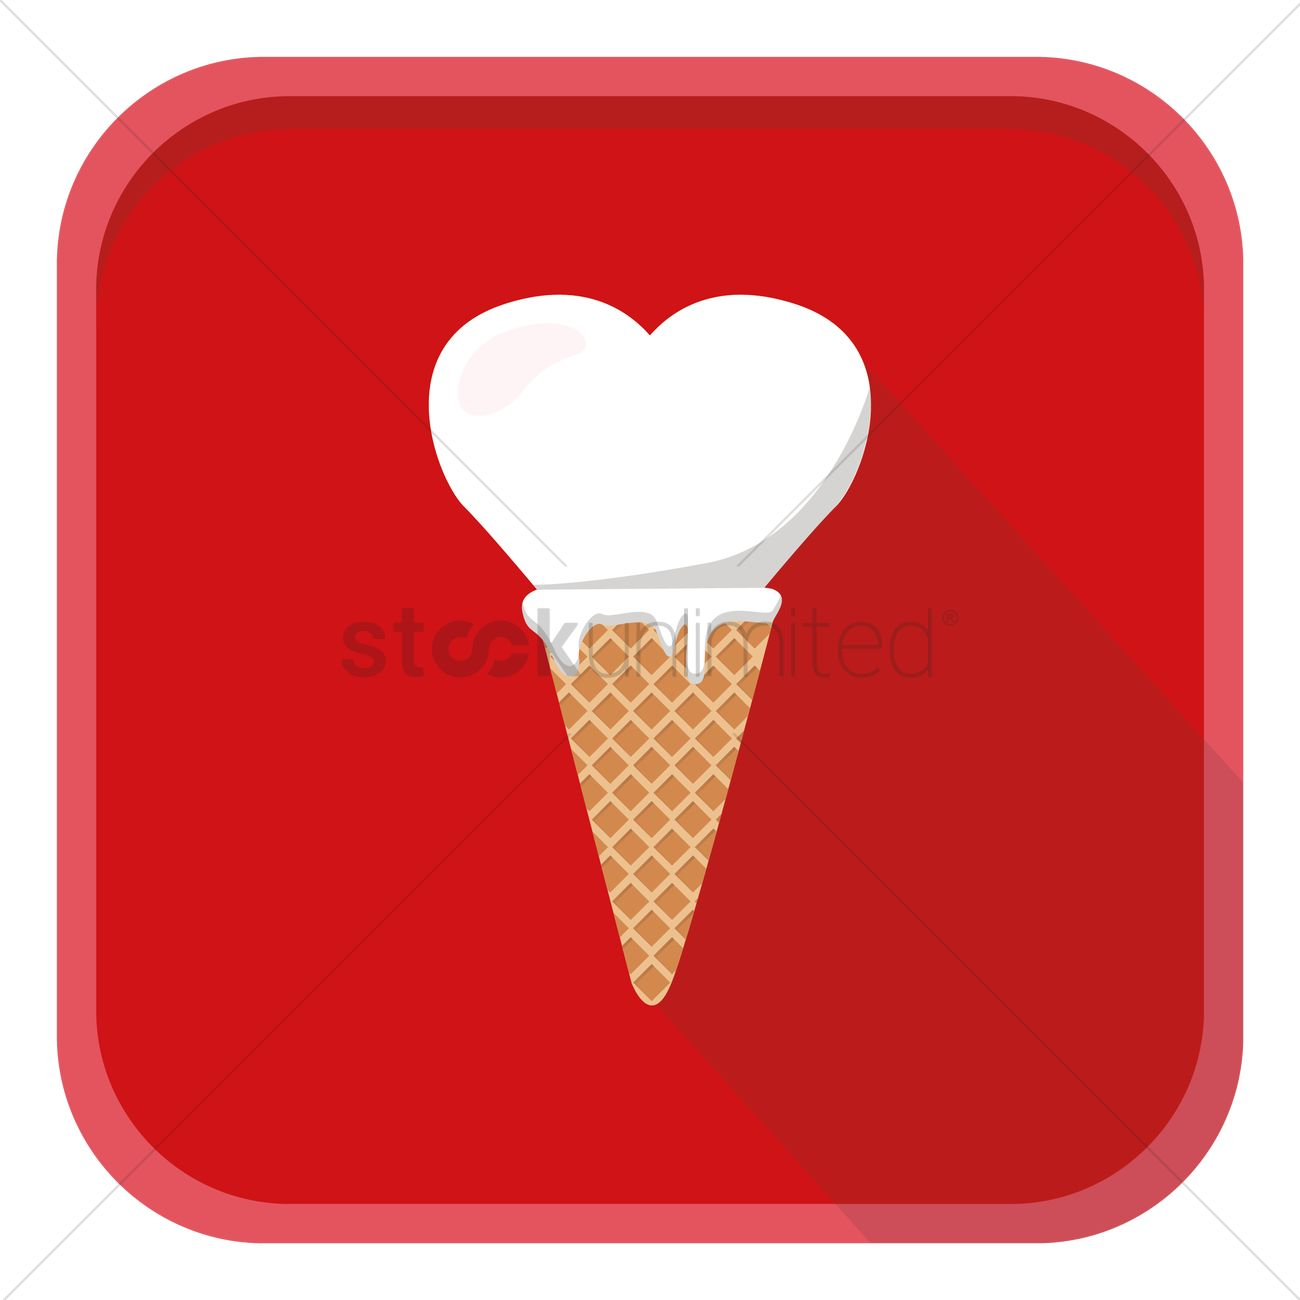 Ice Cream Heart Logo - Free Heart shaped ice cream cone Vector Image - 1274083 | StockUnlimited